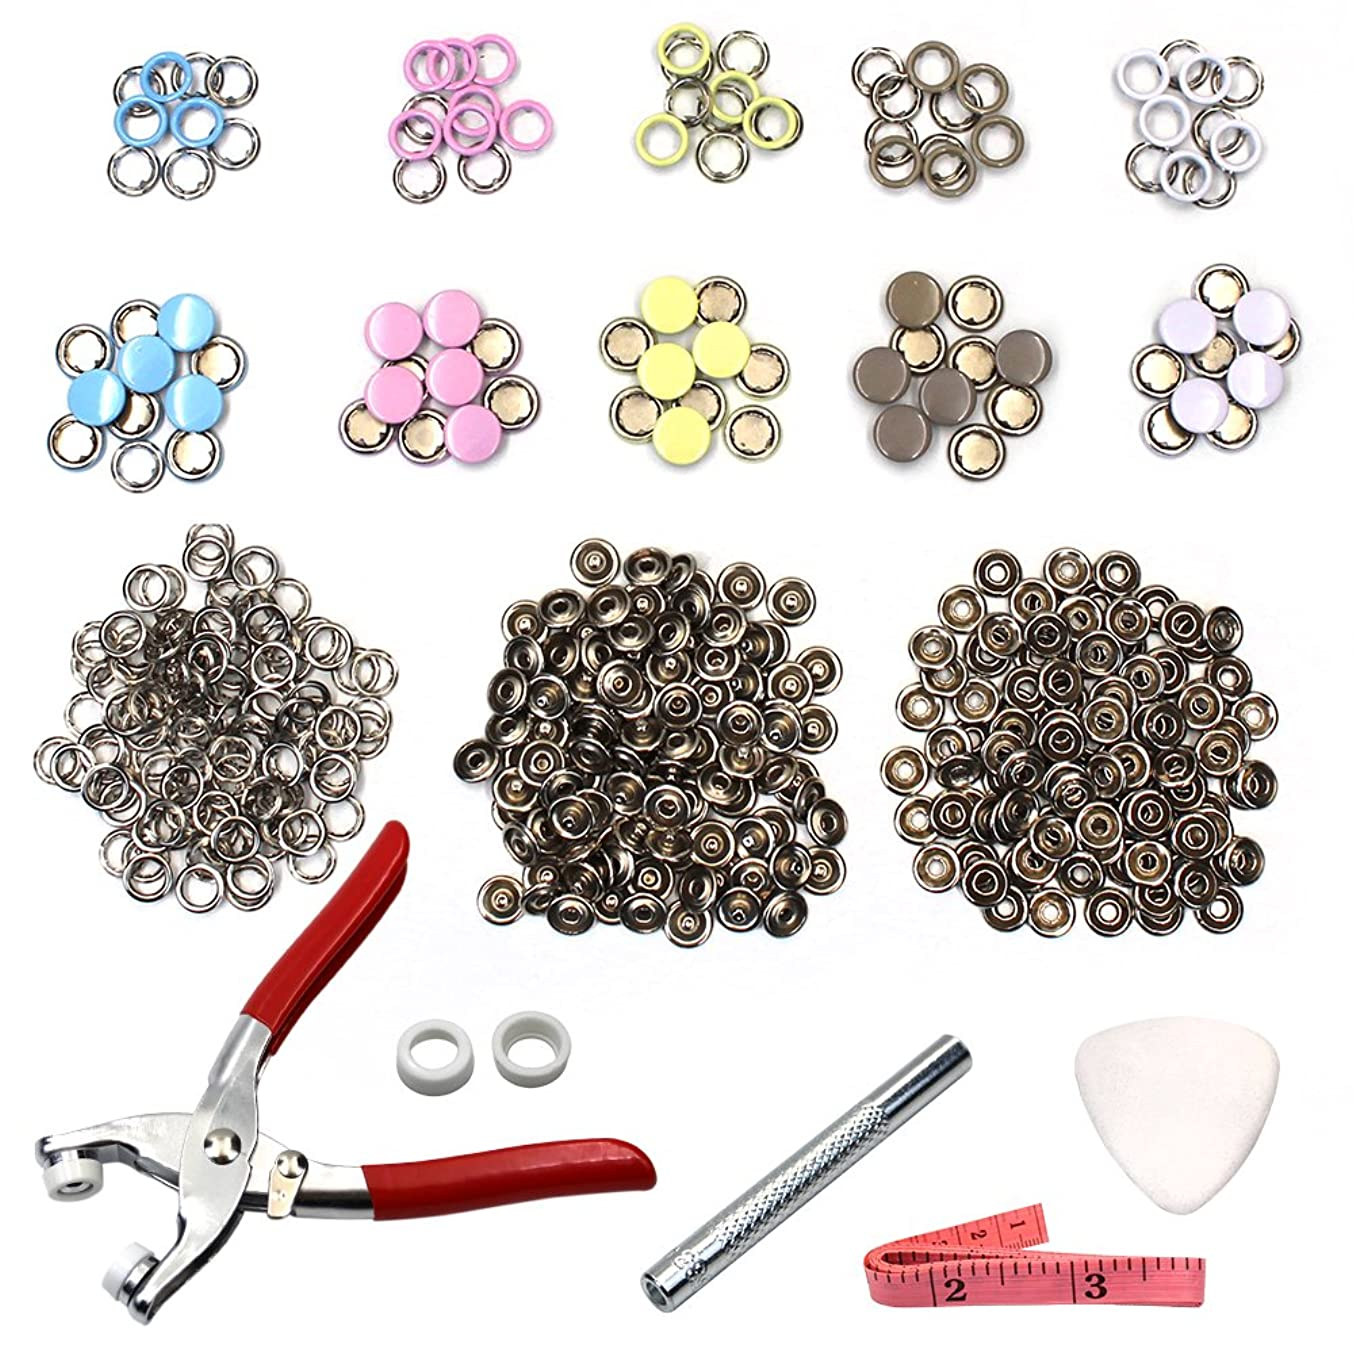 100PCS 9.5mm Prong Press Studs Open Ring No Sew Snaps Buttons Fasteners + Pliers+Tape Measure